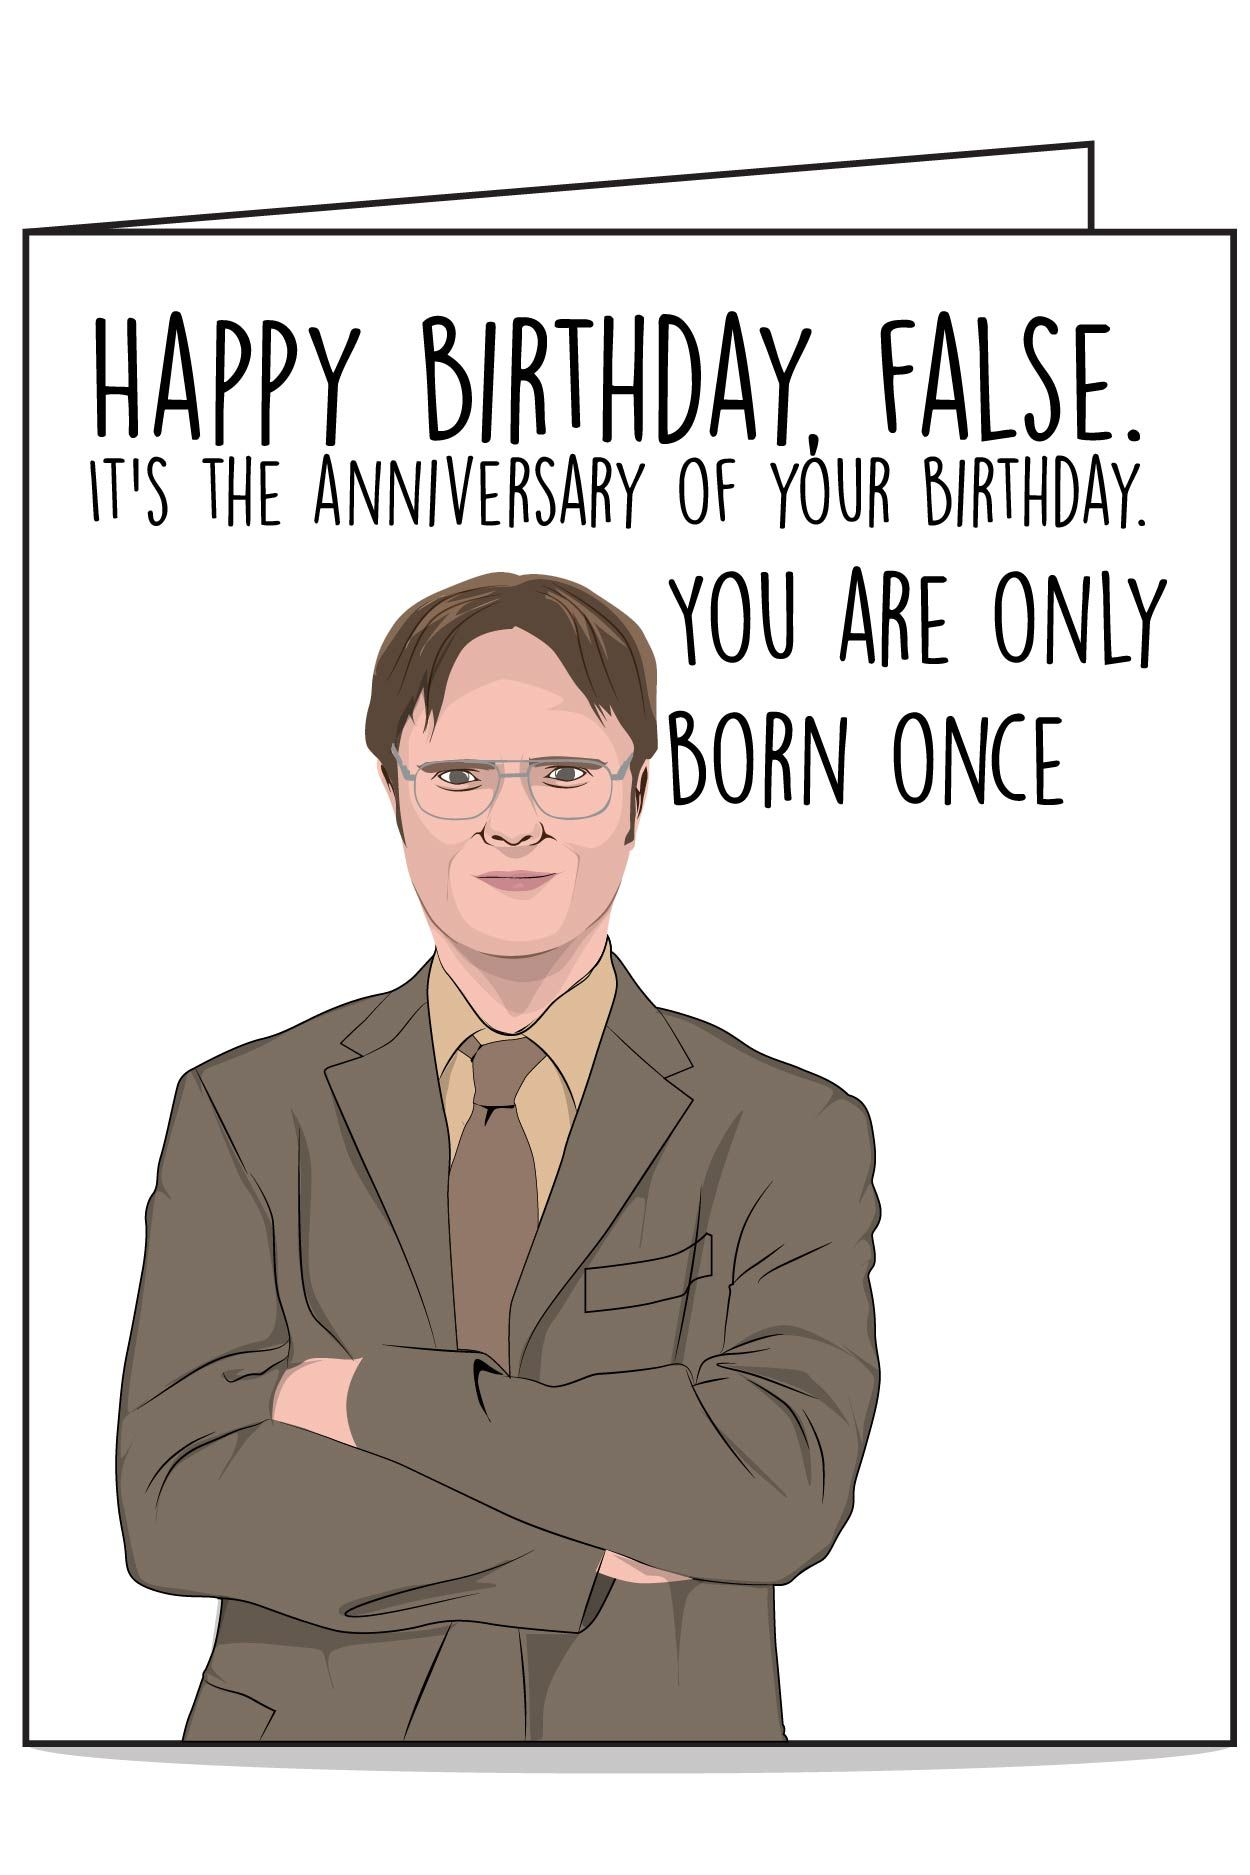 Birthday Meme The Office : birthday, office, Dwight, Schrute, Funny, Birthday, Card., Office, Greeting, Laugh., Birthday,, Cards,, Jokes